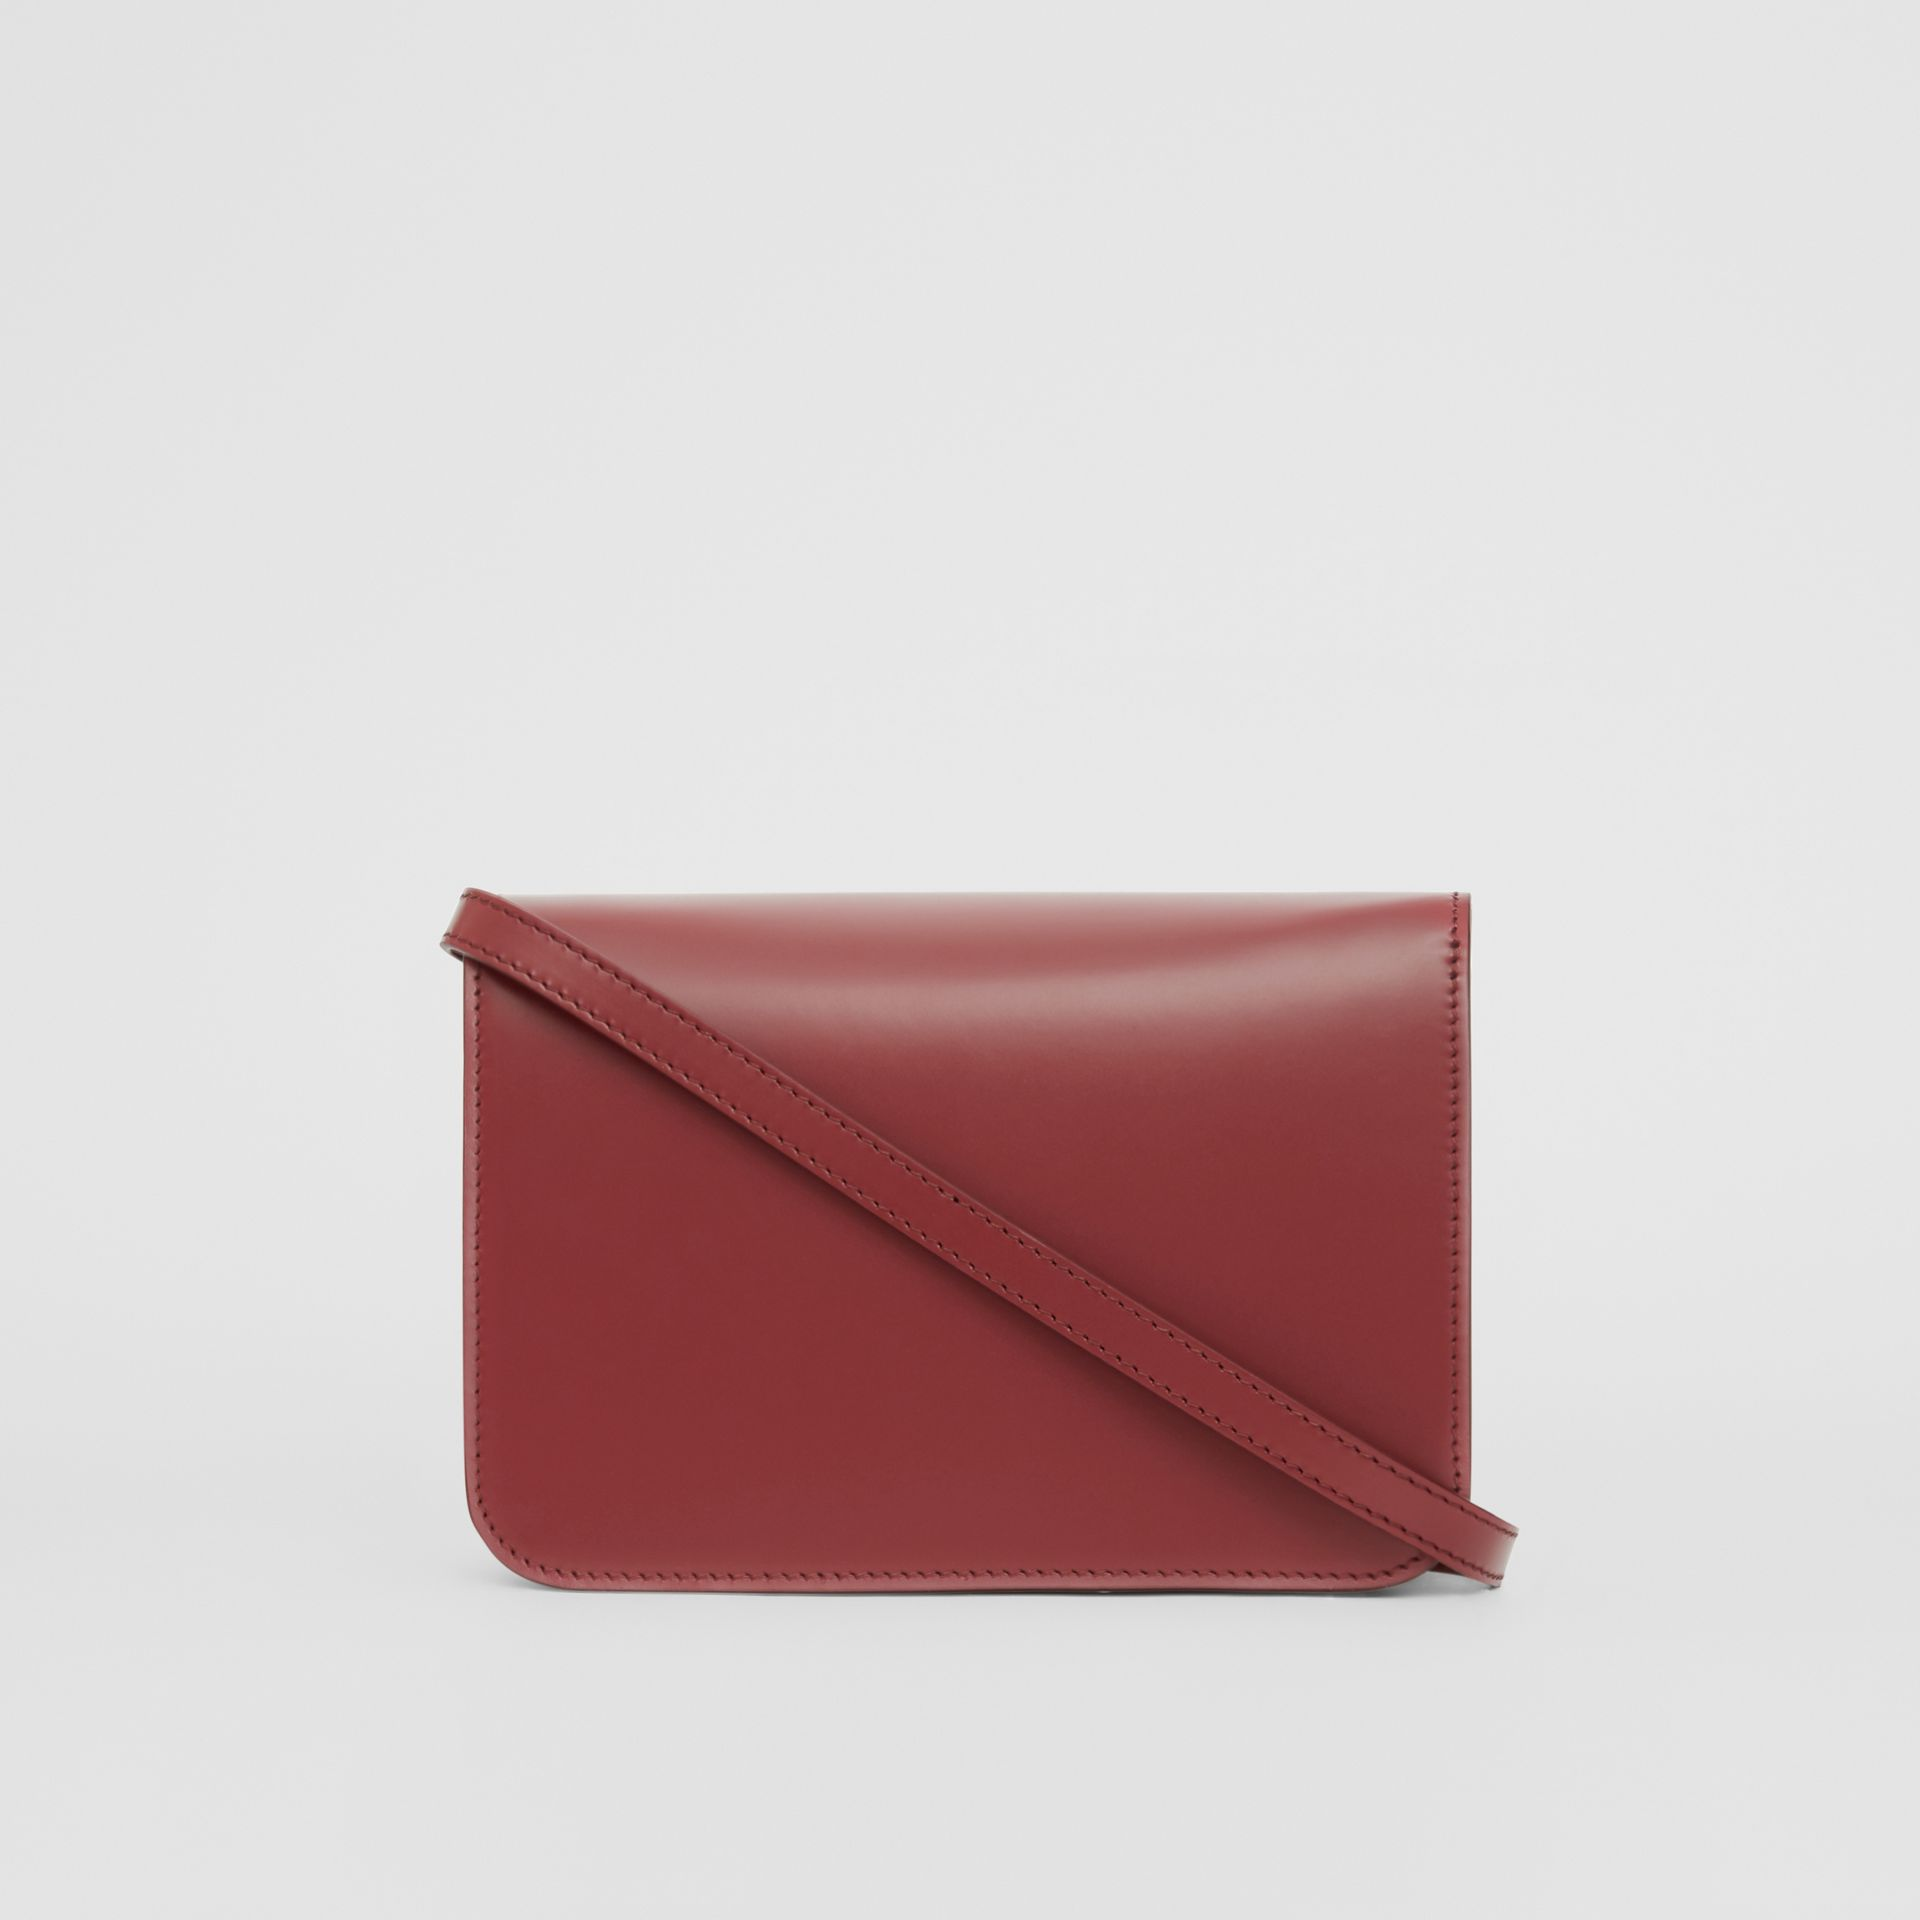 Small Leather TB Bag in Crimson - Women | Burberry Singapore - gallery image 7